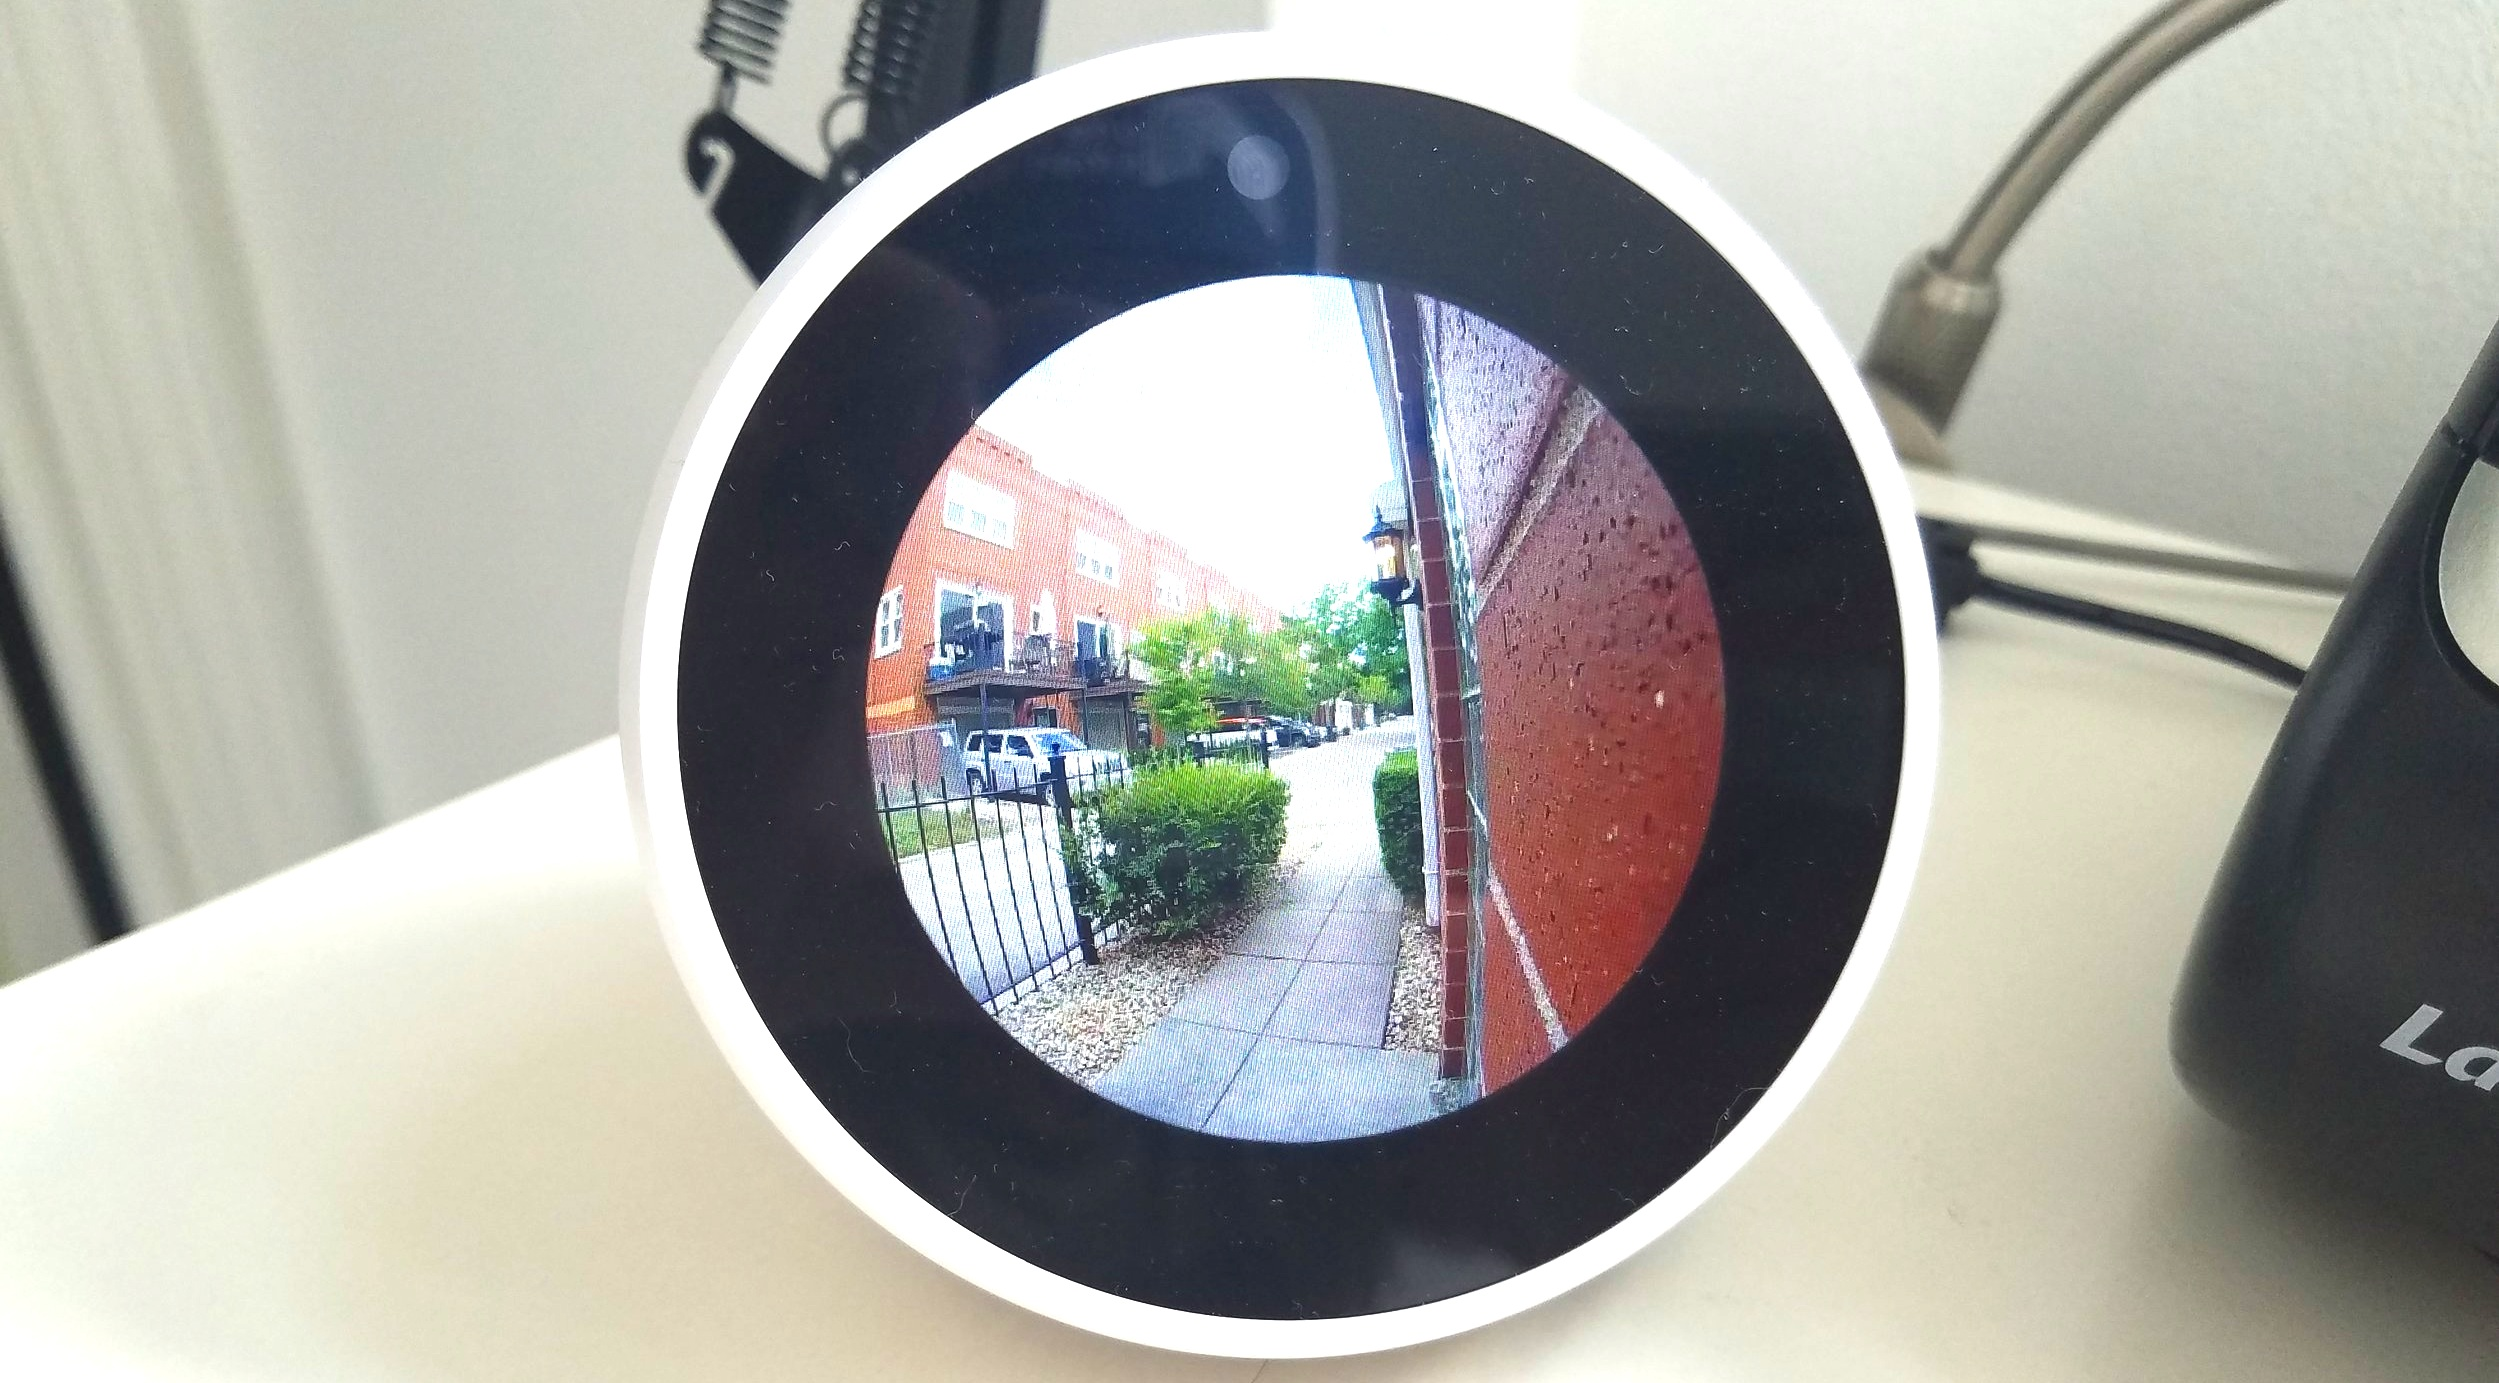 You Can view the Video Feed from Your Ring pro Doorbell on Any Alexa Device With a screen. Live Doorbell Feed Shown on Echo Spot